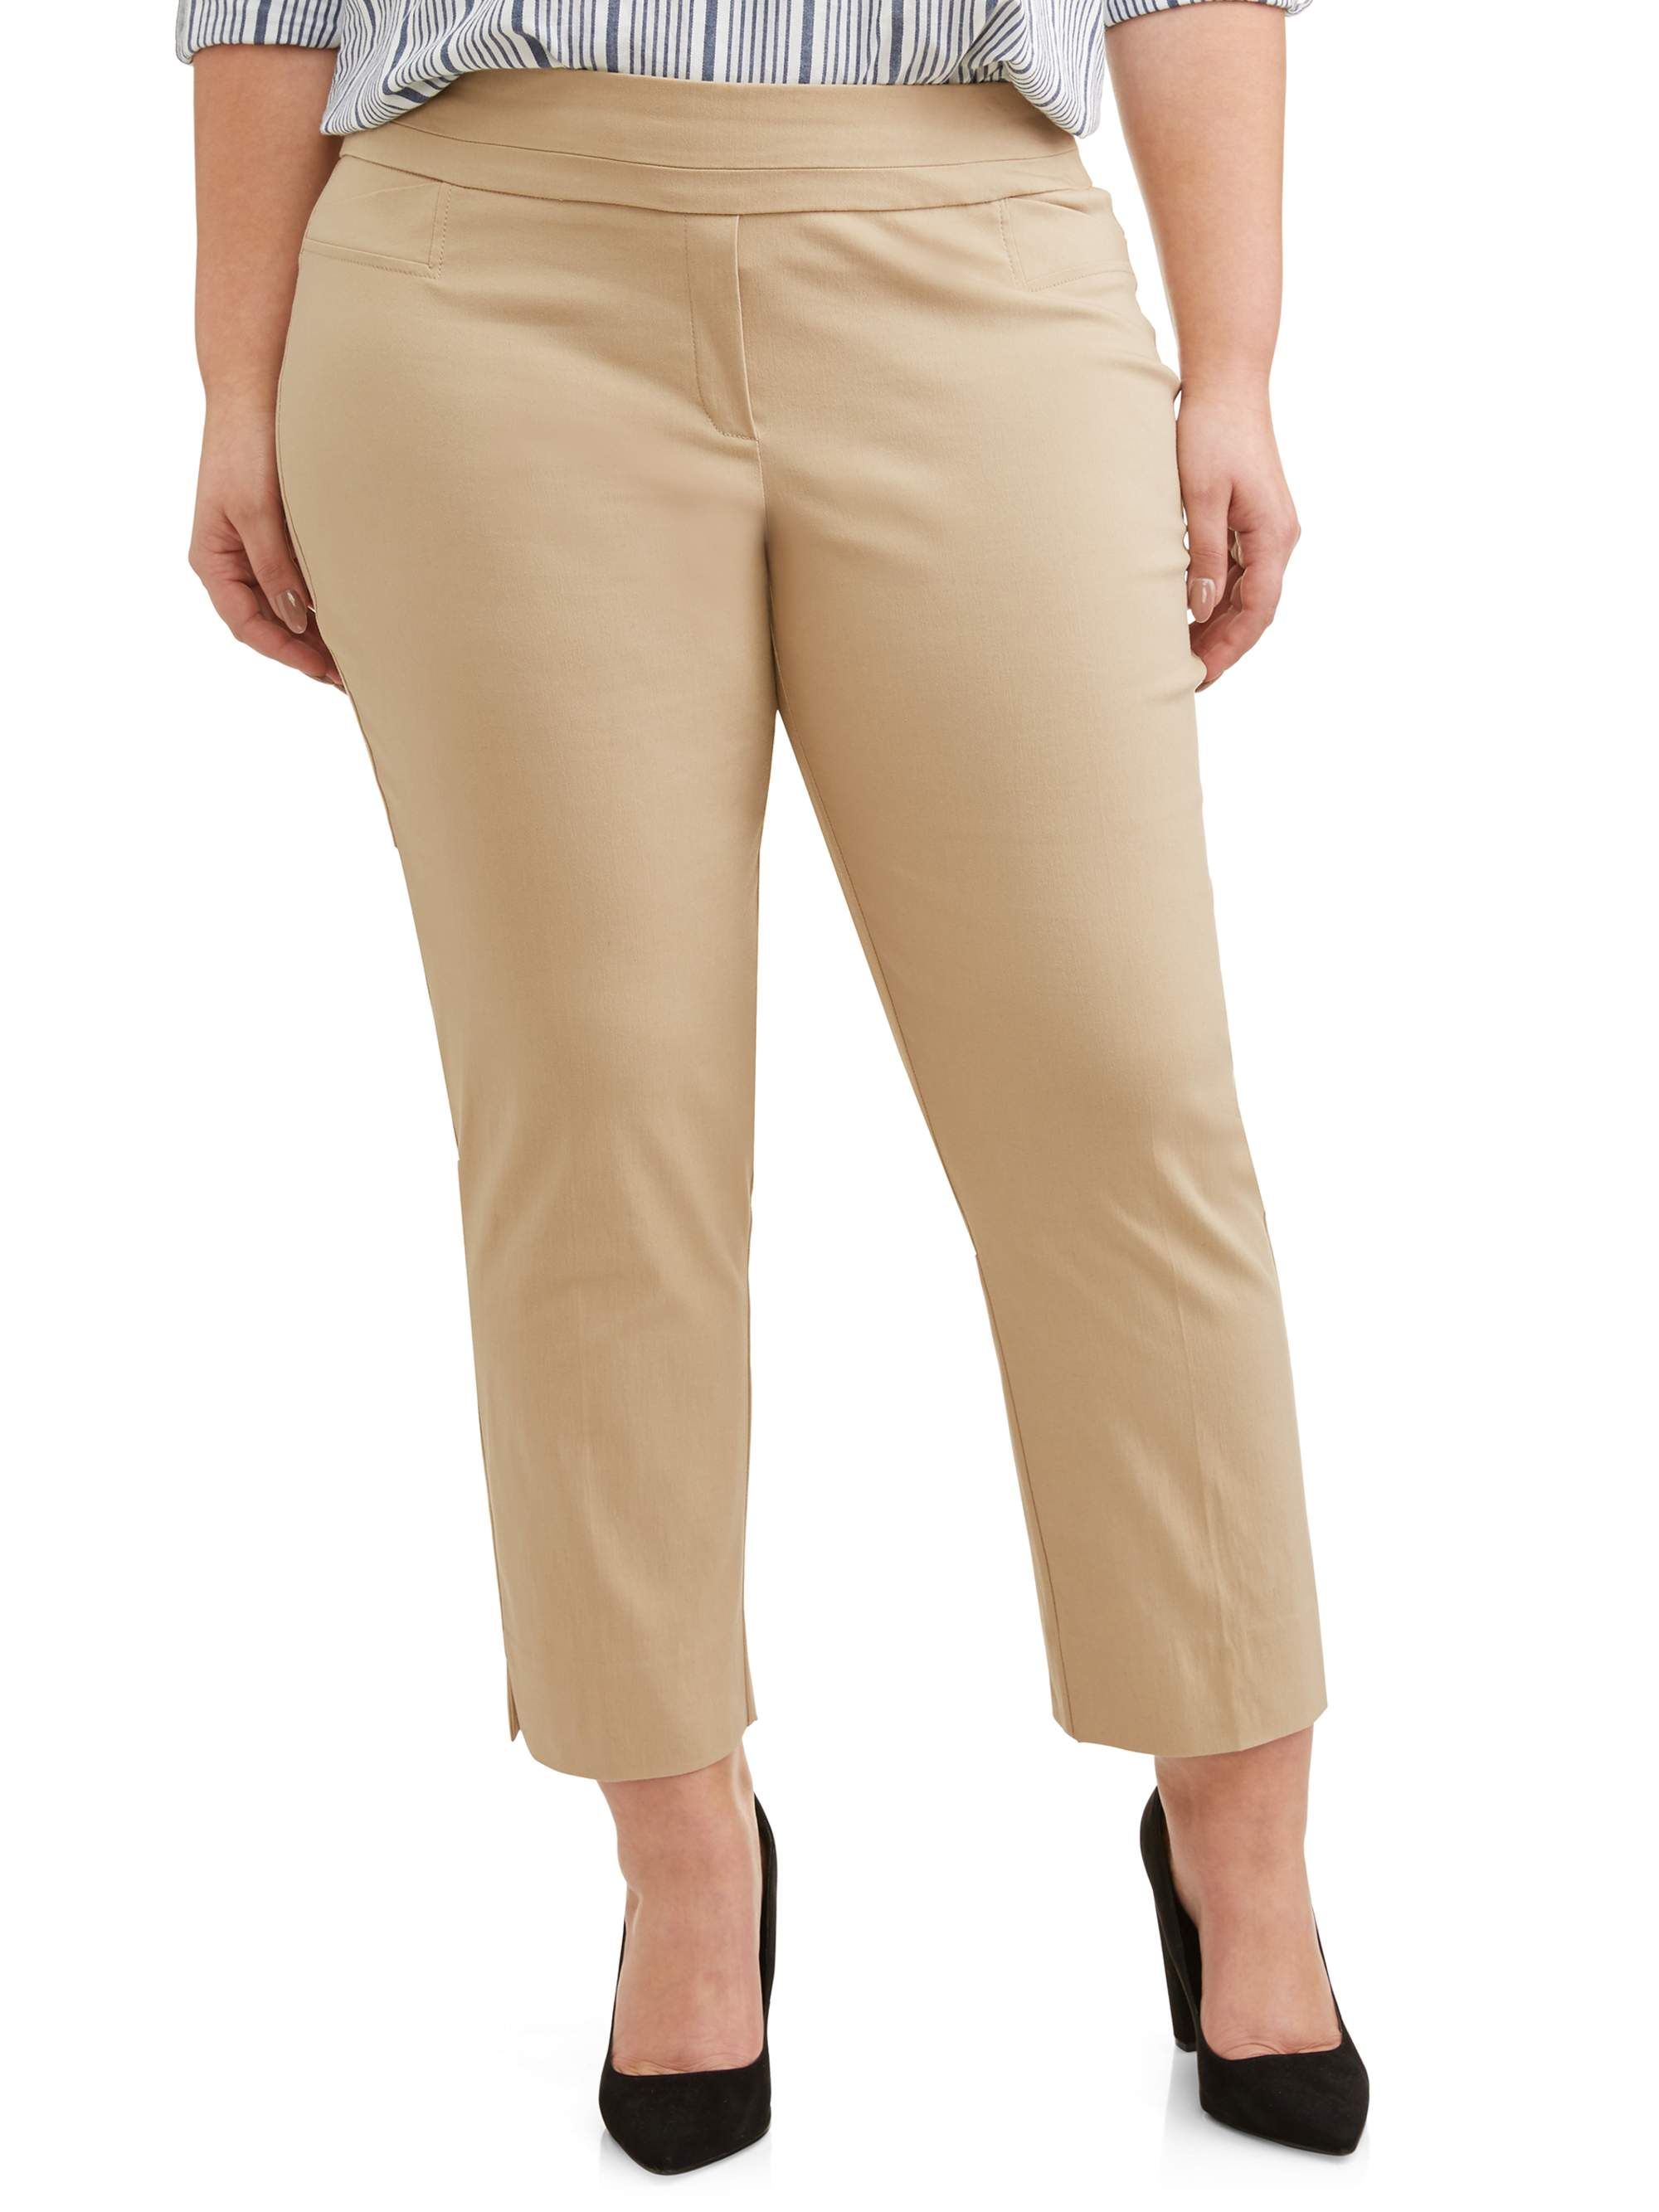 Women's Plus Size Stretch Woven Ankle Pant